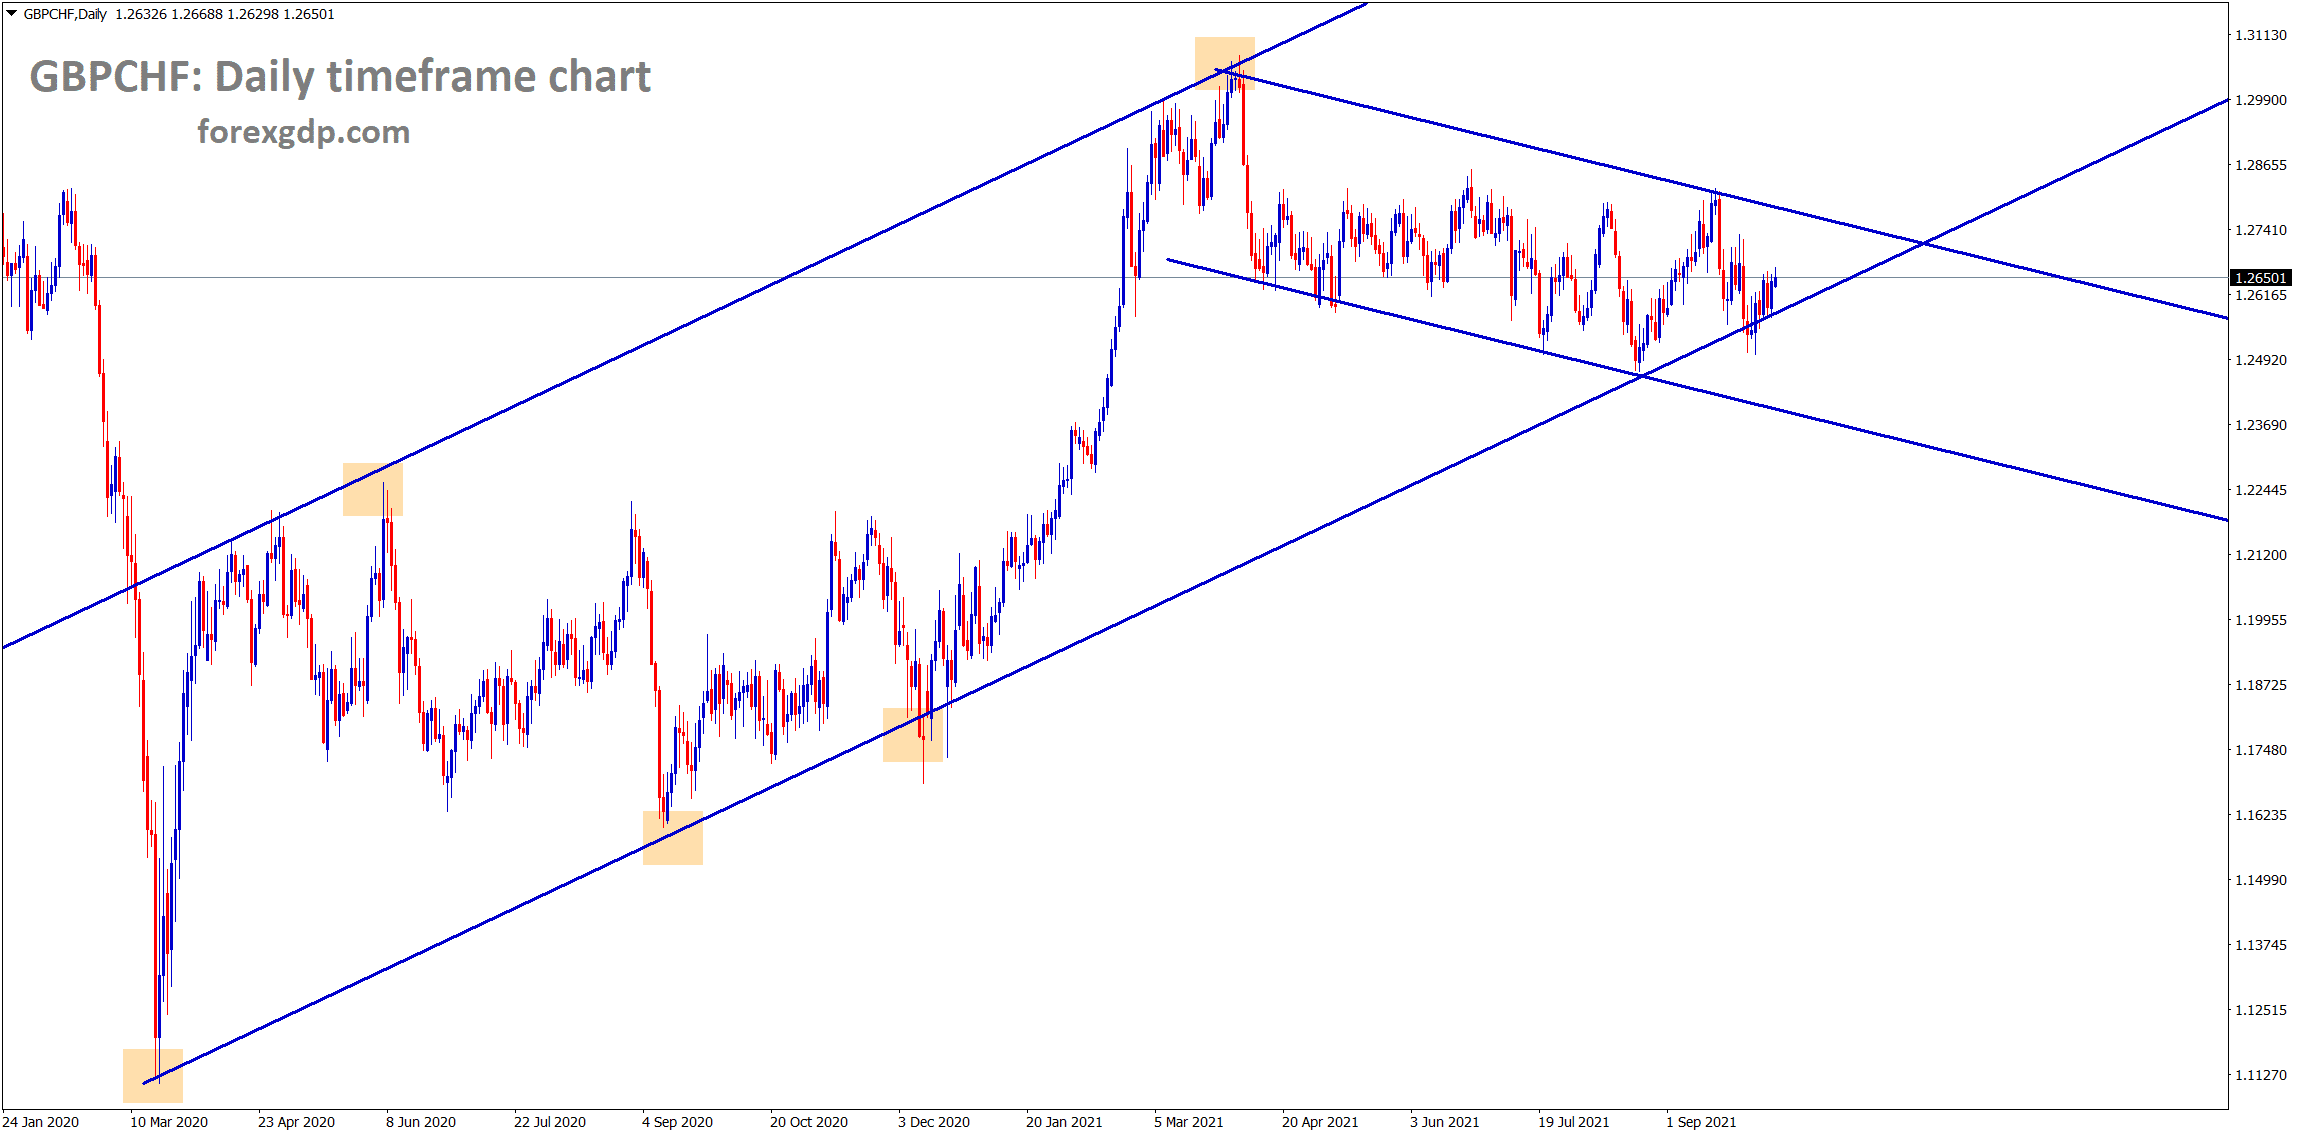 GBPCHF is moving in an Uptrend line for a long time